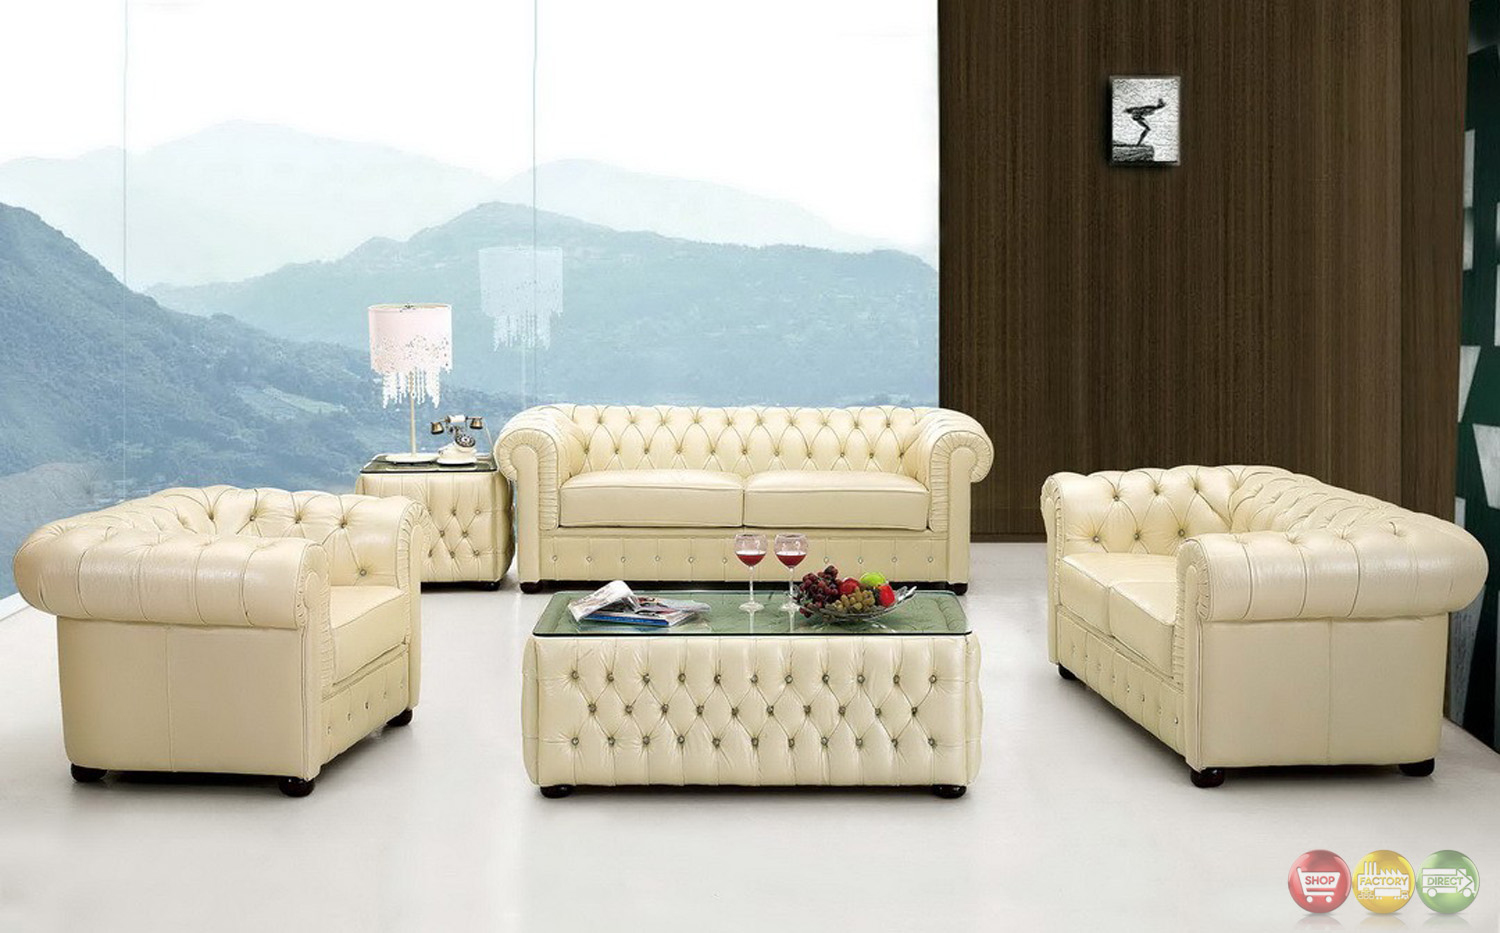 258 rhinestone tufted chesterfield chair in cream beige top grain leather - Canape chesterfield beige ...